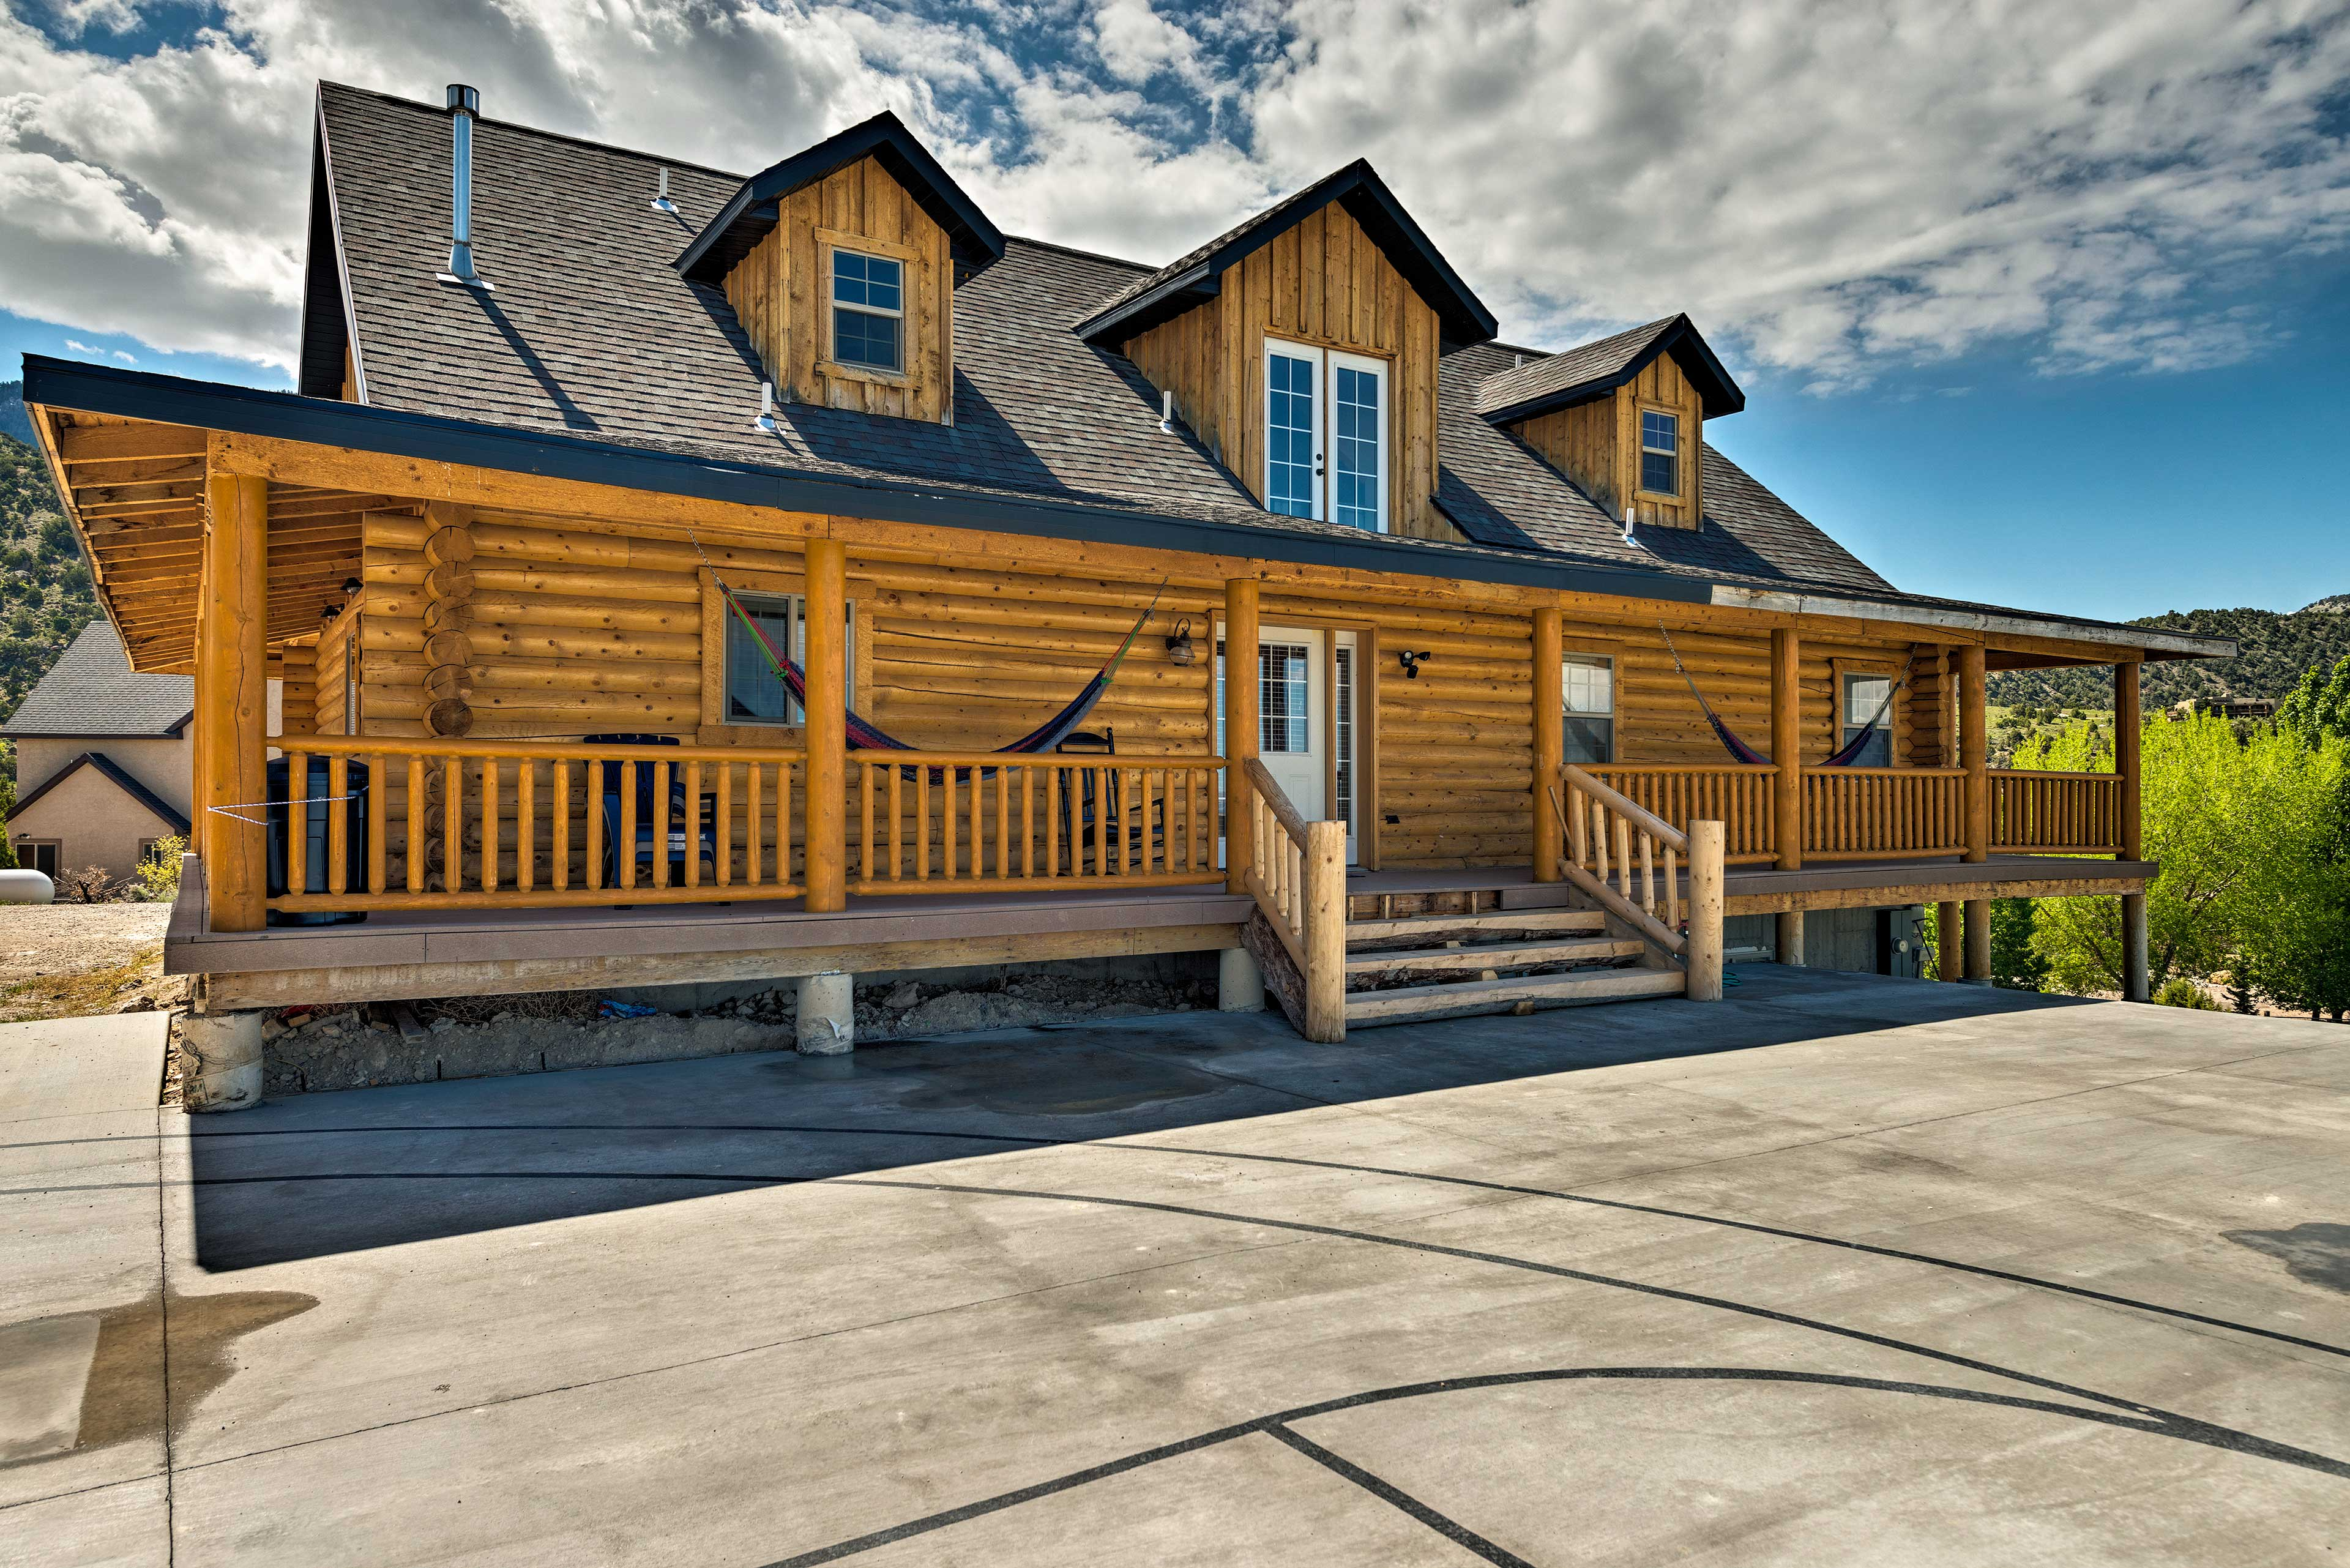 Book 'Englestead Cabin' for your next stay in stunning Sterling, Utah!